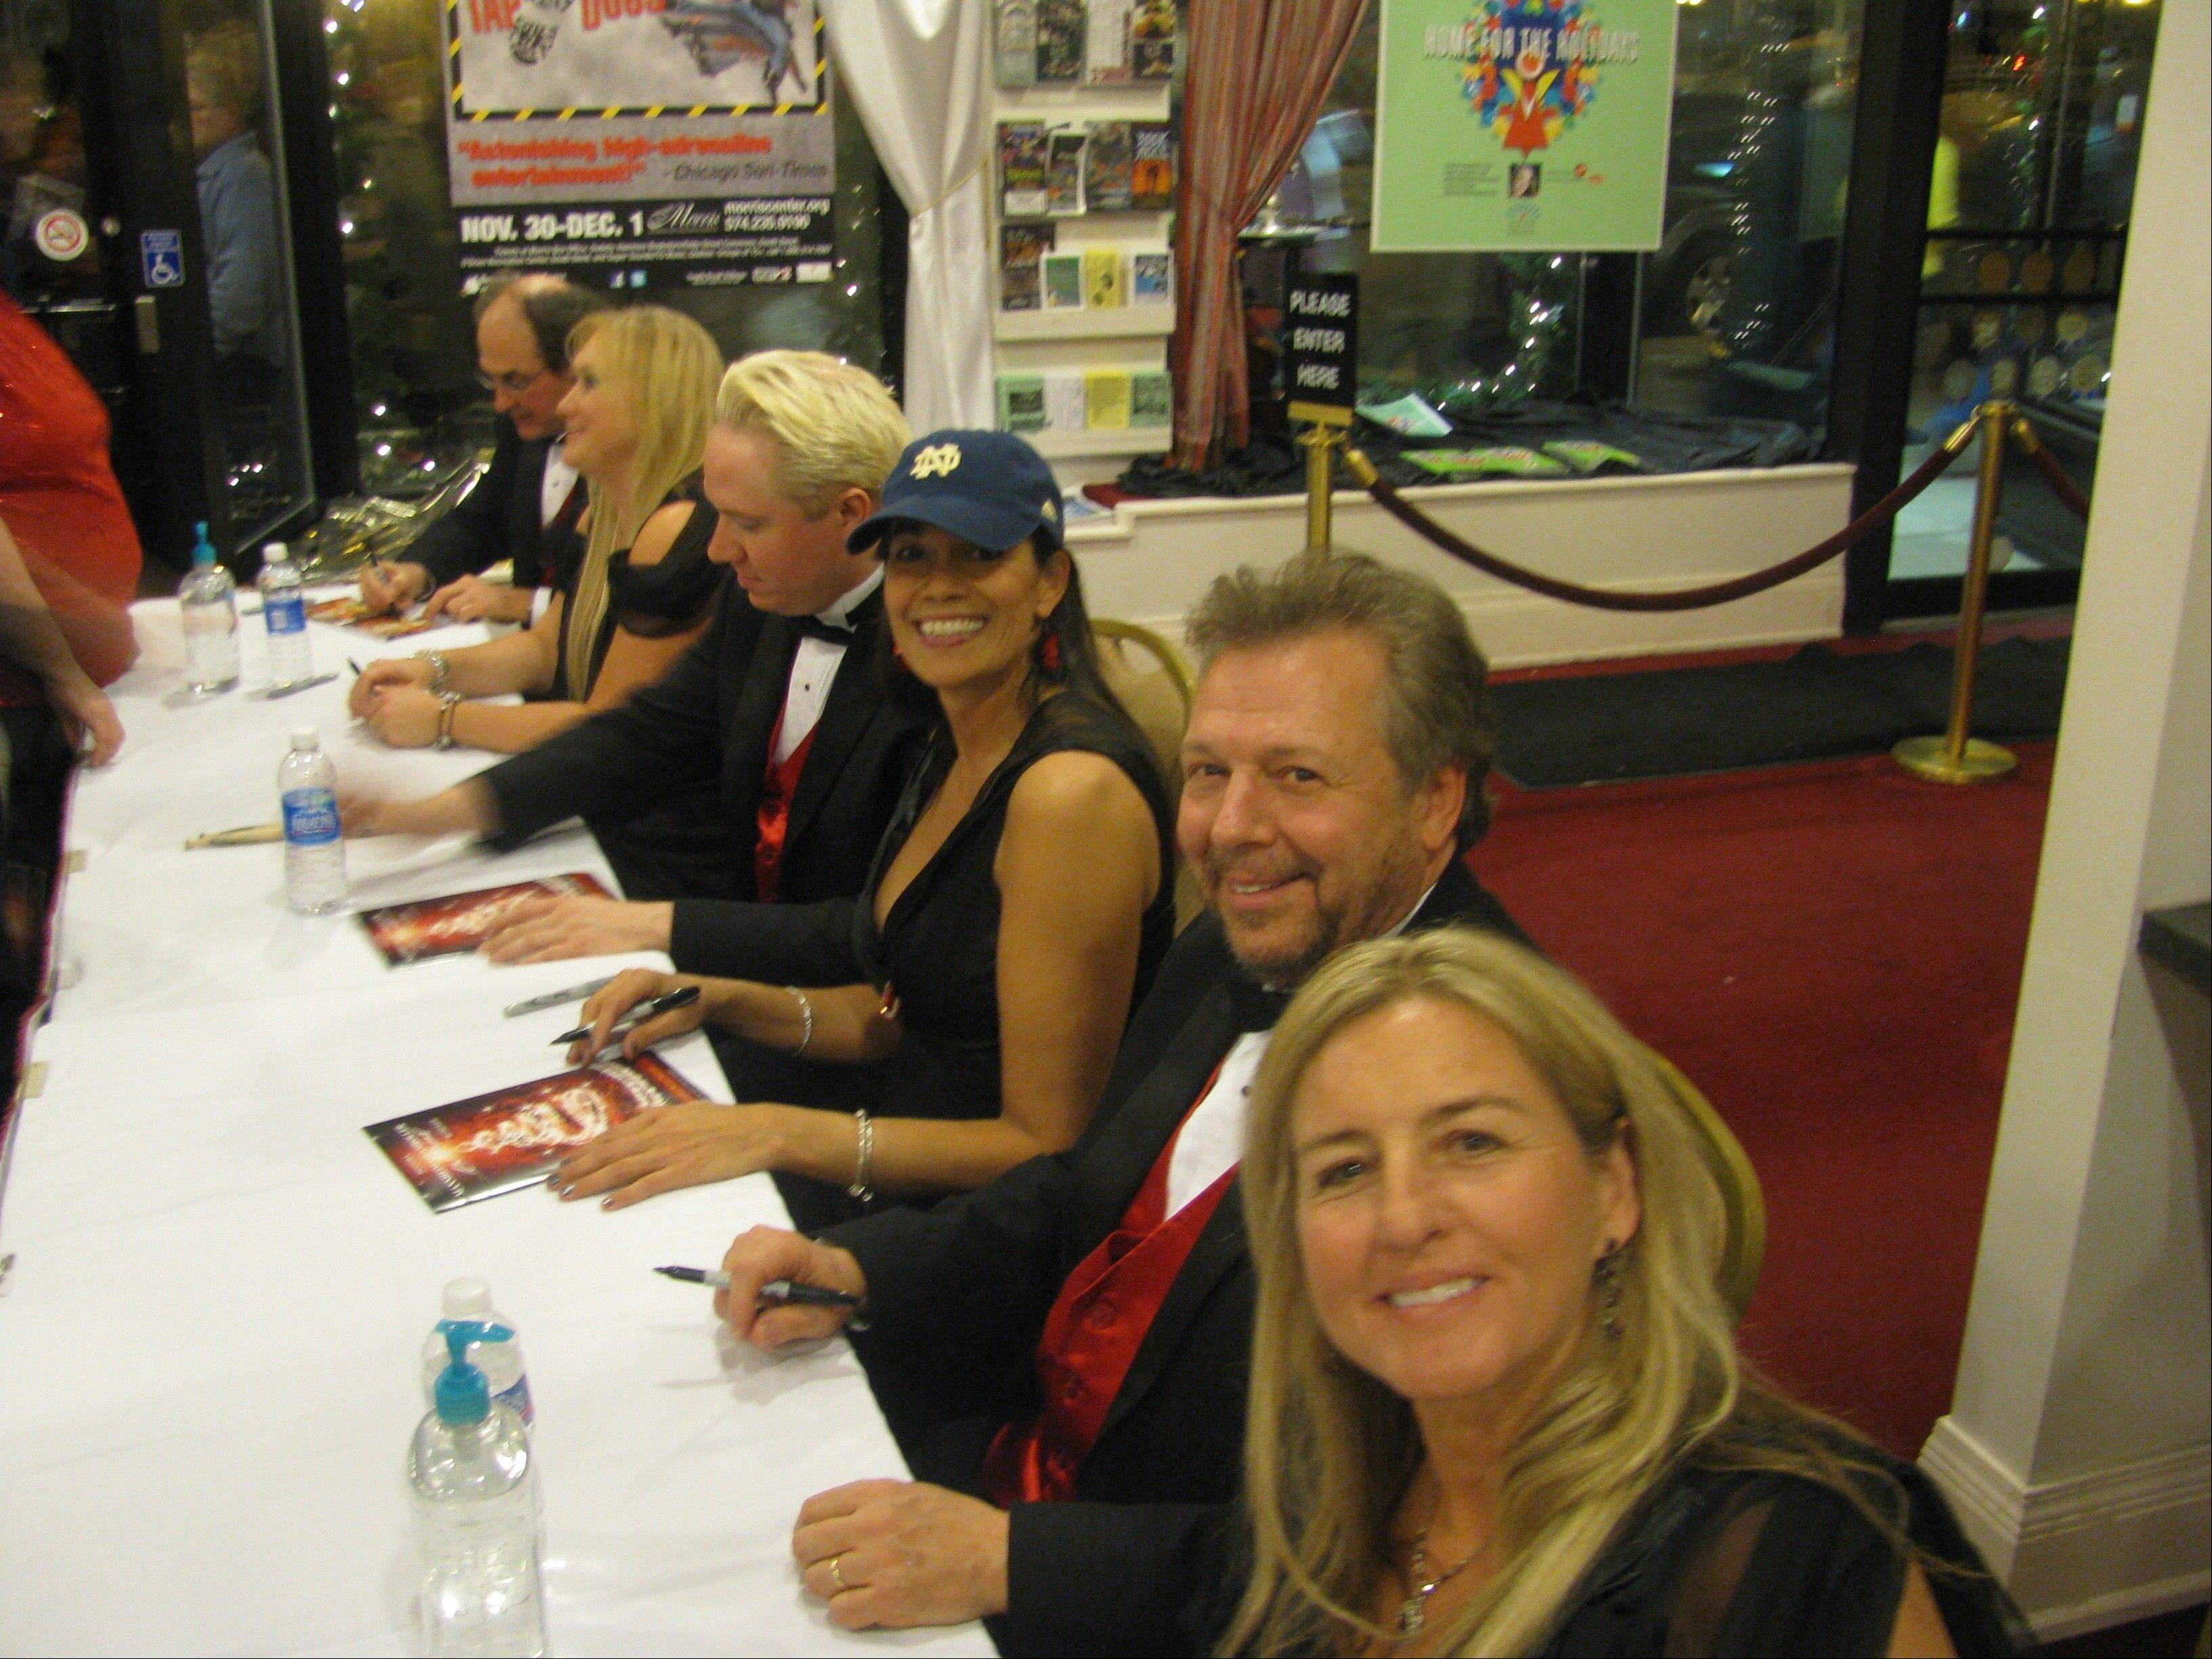 Violinist Becky Kia, third from right, signs autographs following a performance with Mannheim Steamroller.